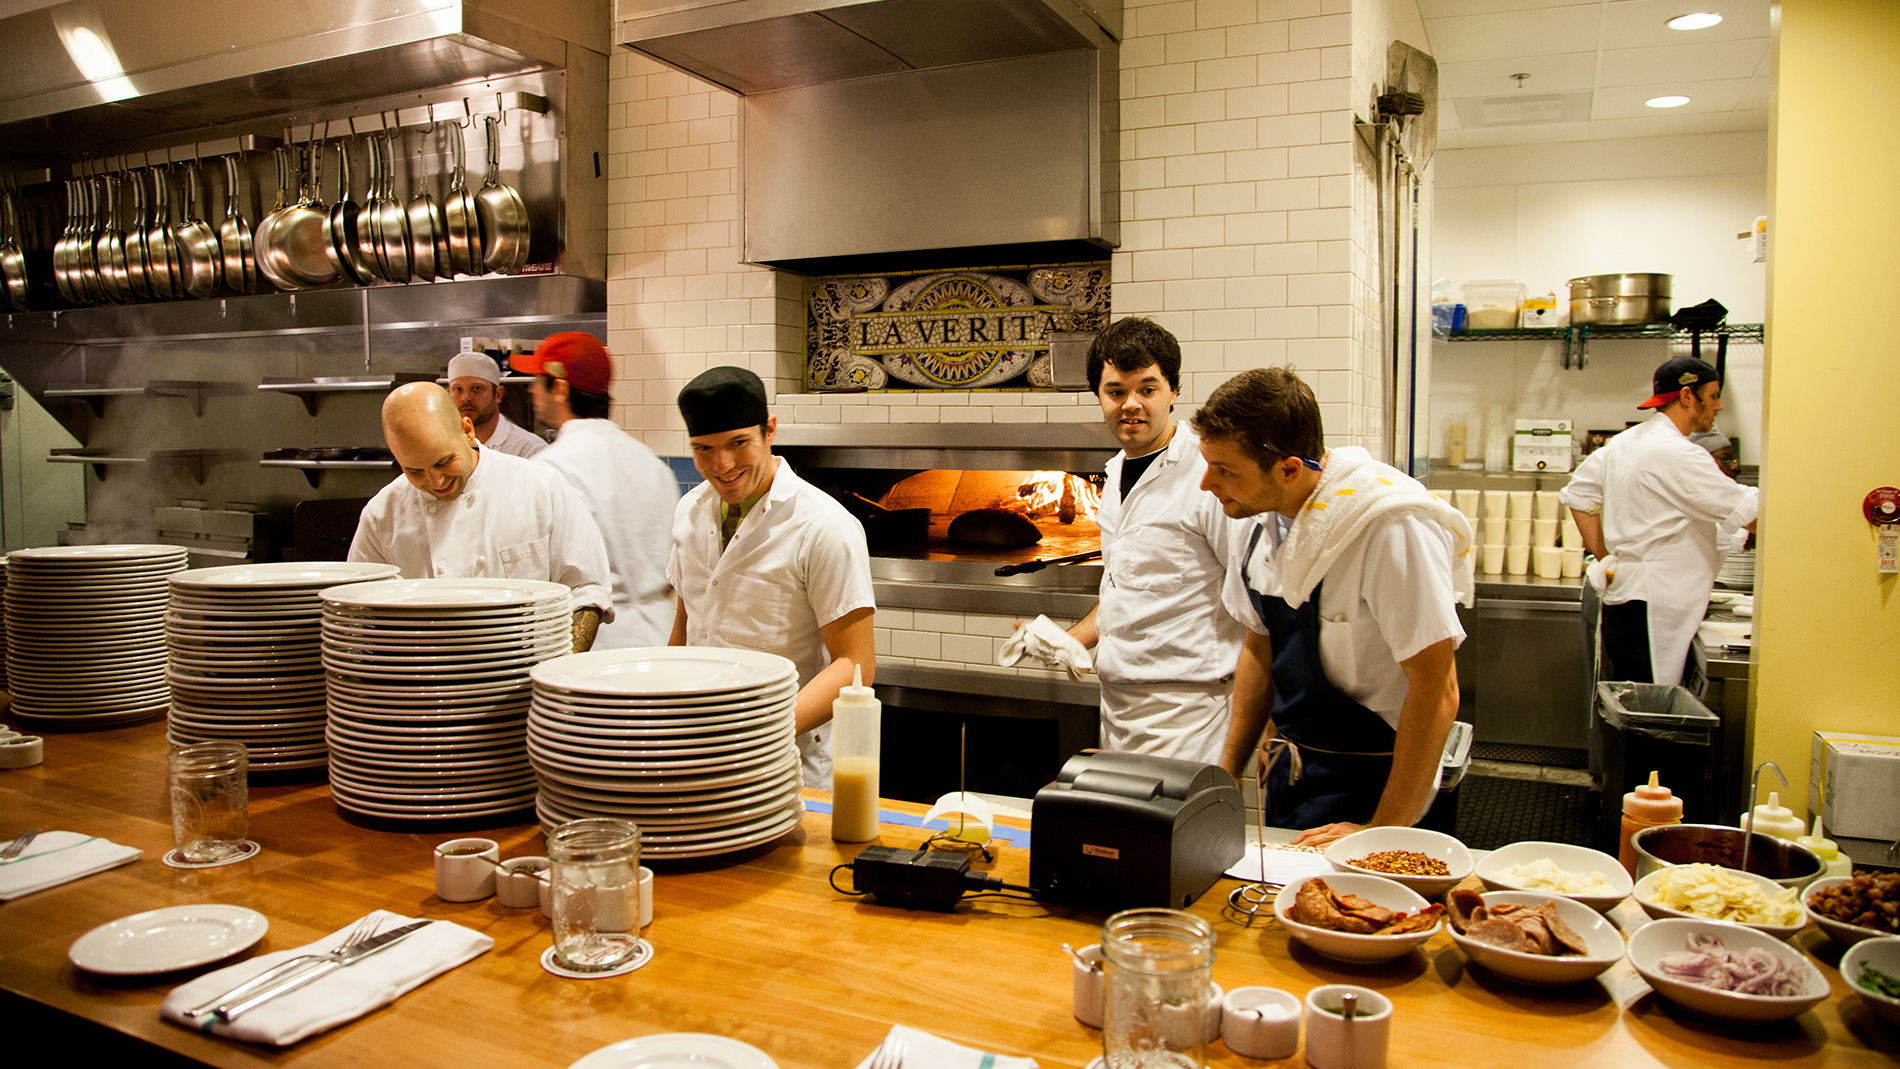 chefs behind a wooden counter